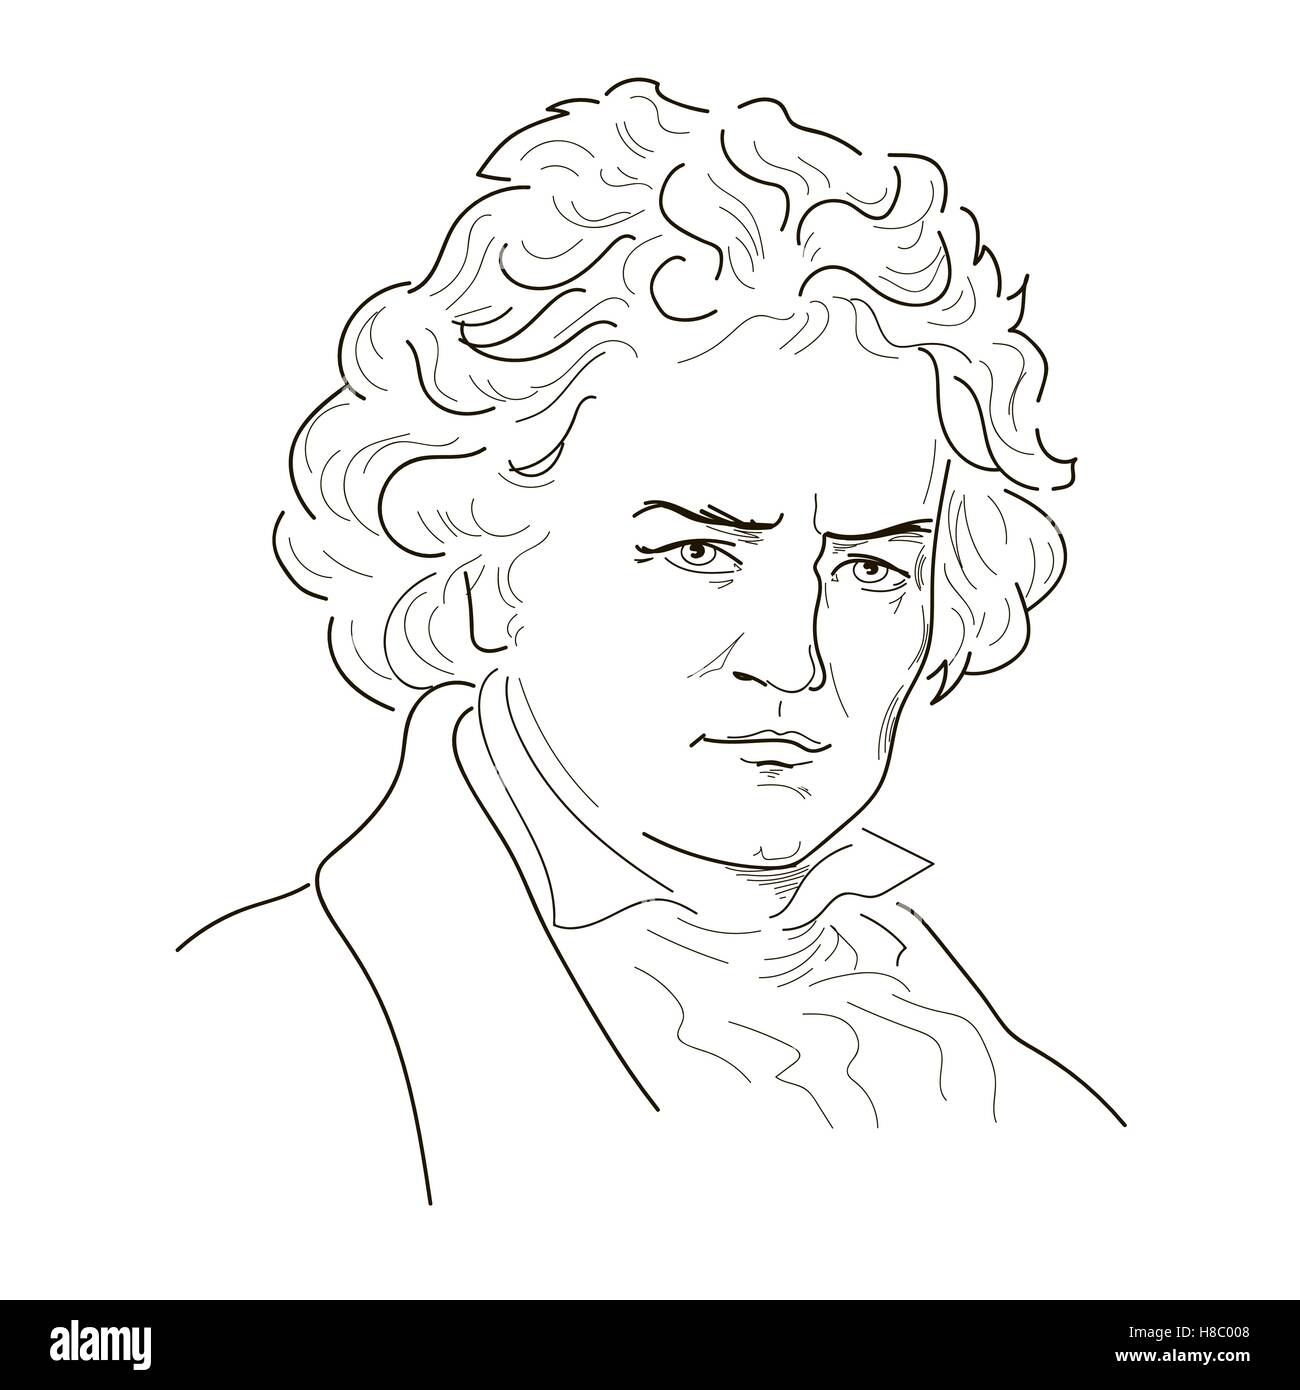 Ludwig van Beethoven. Sketch illustration. Black and white. Vector. - Stock Image